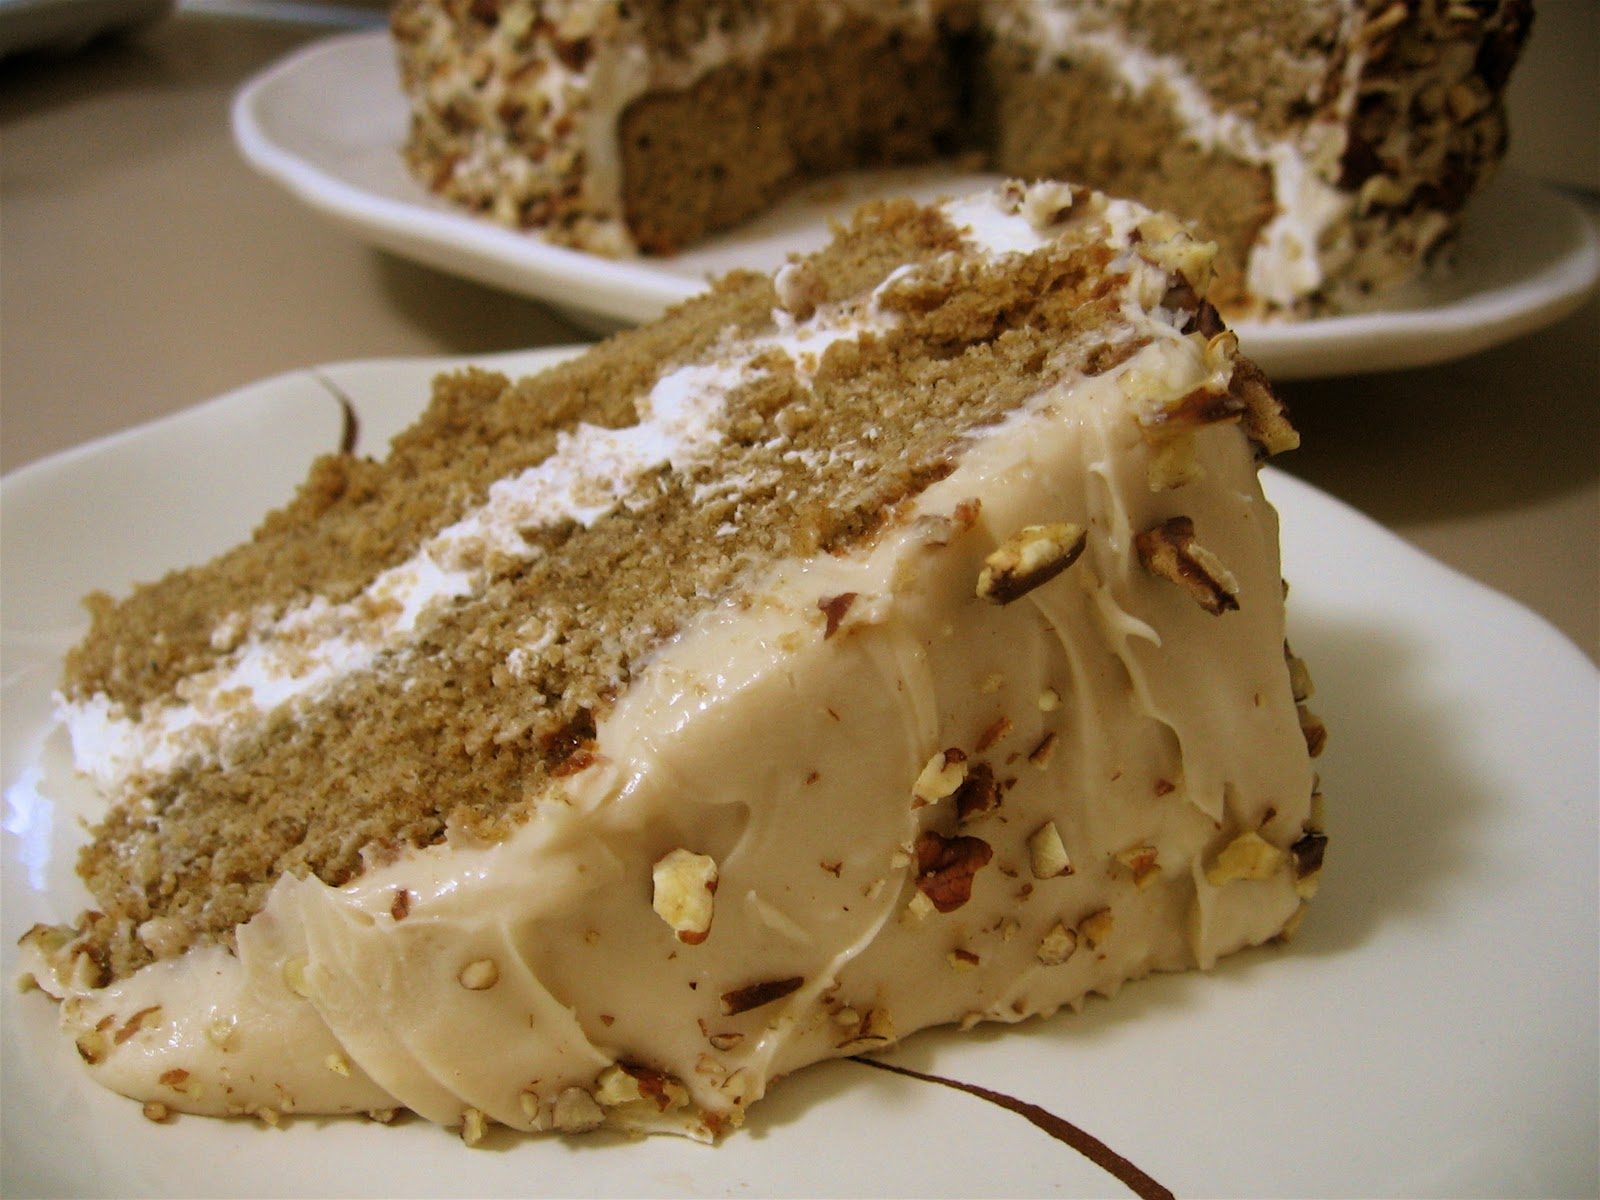 ... For Laughter: Spiced Layer Cake with Maple Cream Cheese Frosting